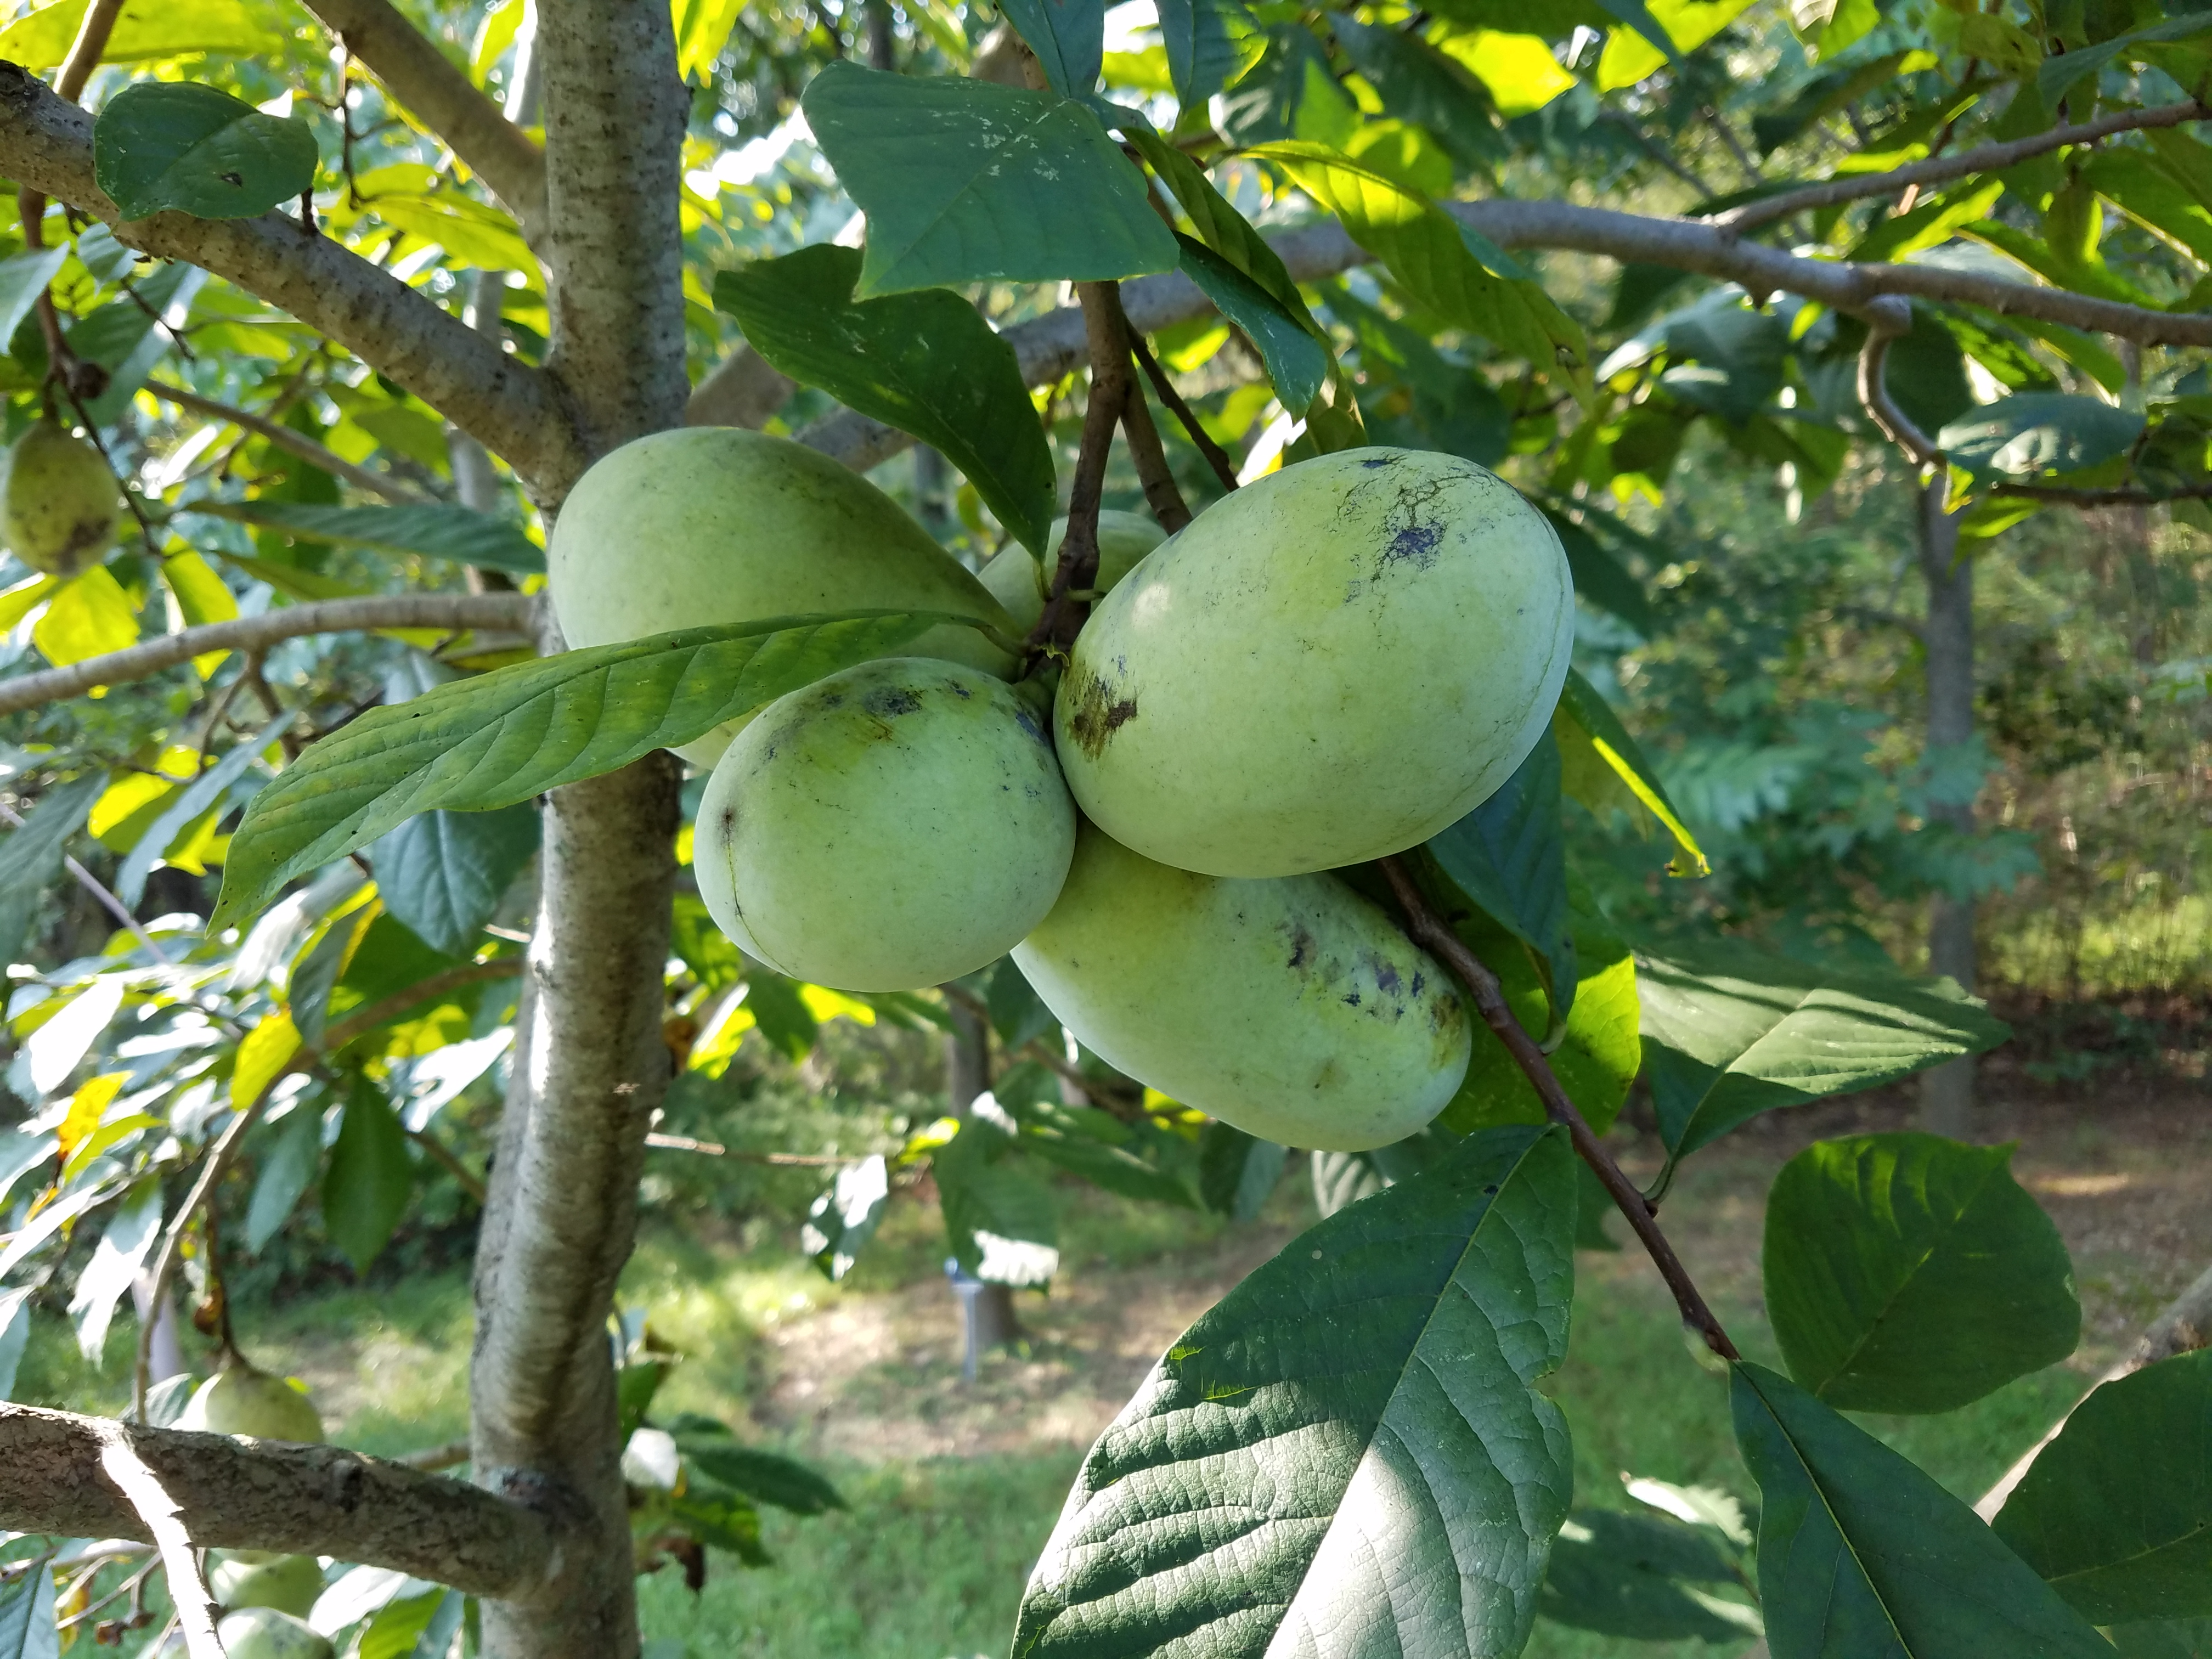 Summer Delight pawpaws<br> on tree